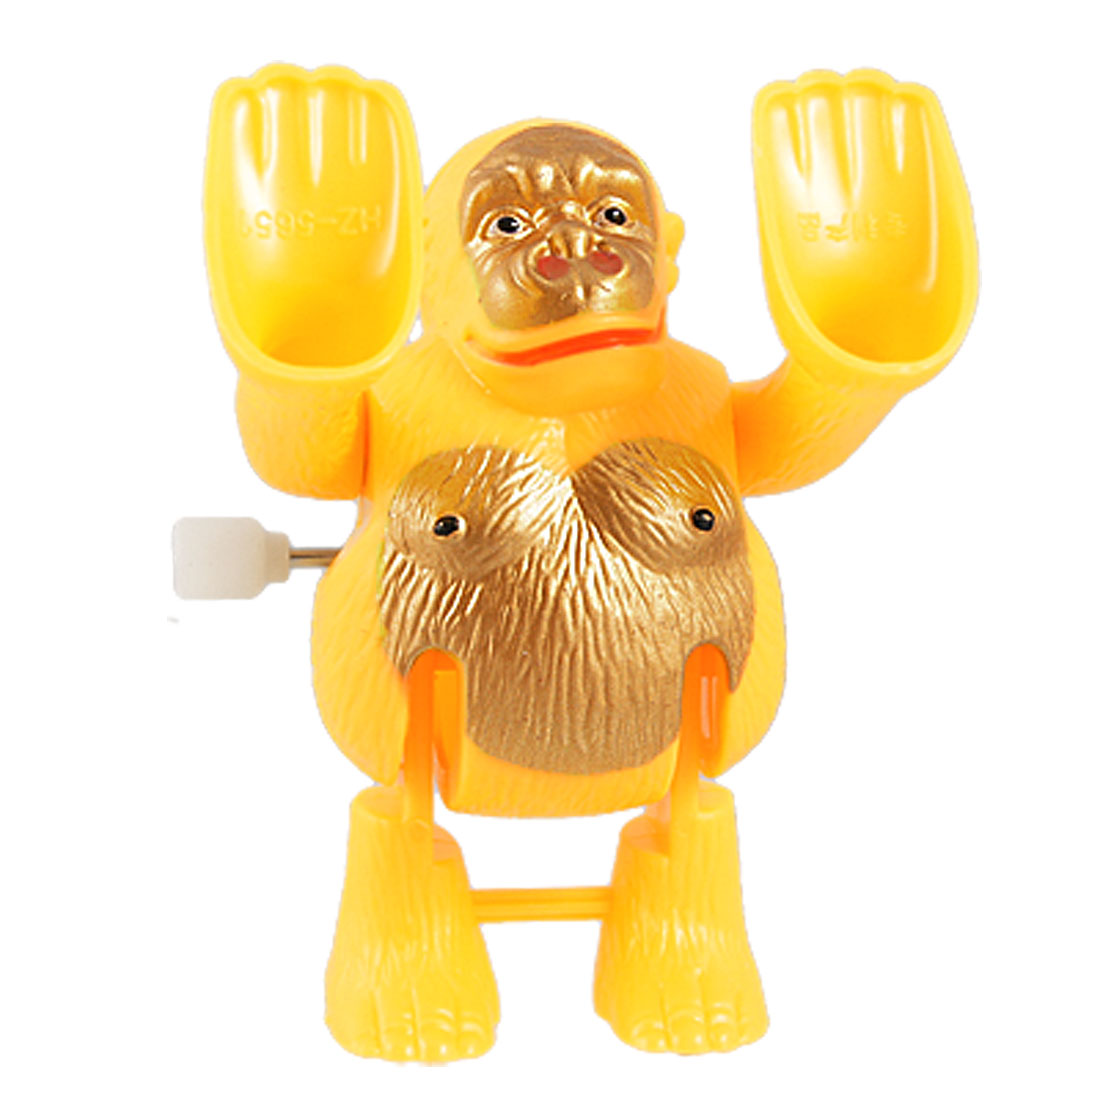 Yellow Plastic 360 Degree Wind up Somersault Monkey Toy for Children